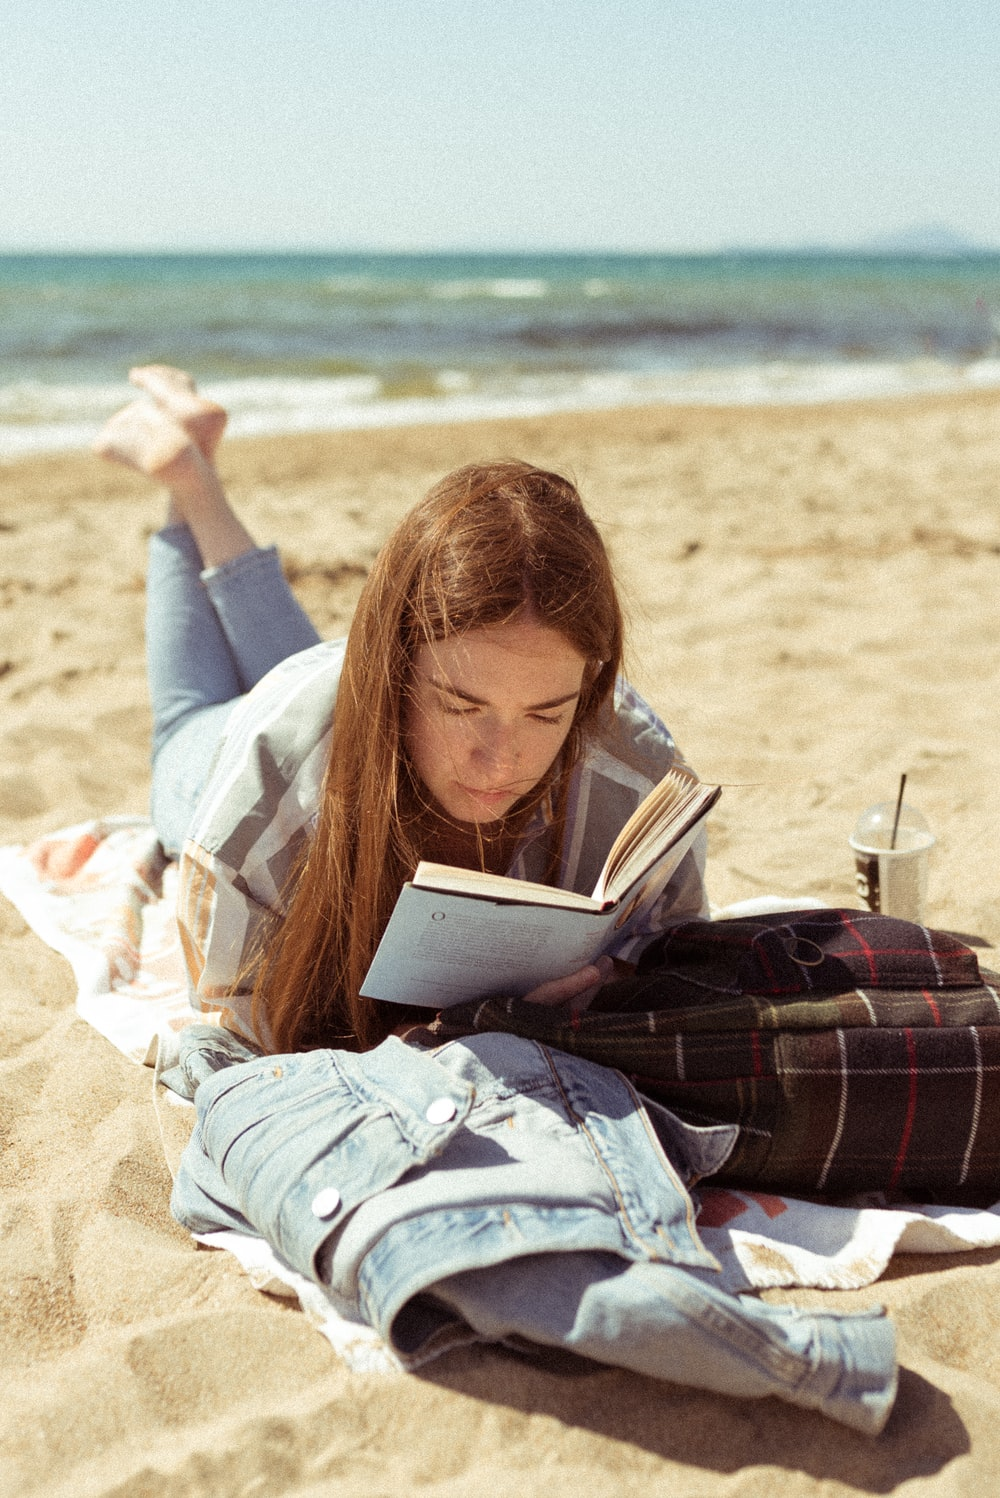 woman in white long sleeve shirt reading book on beach during daytime